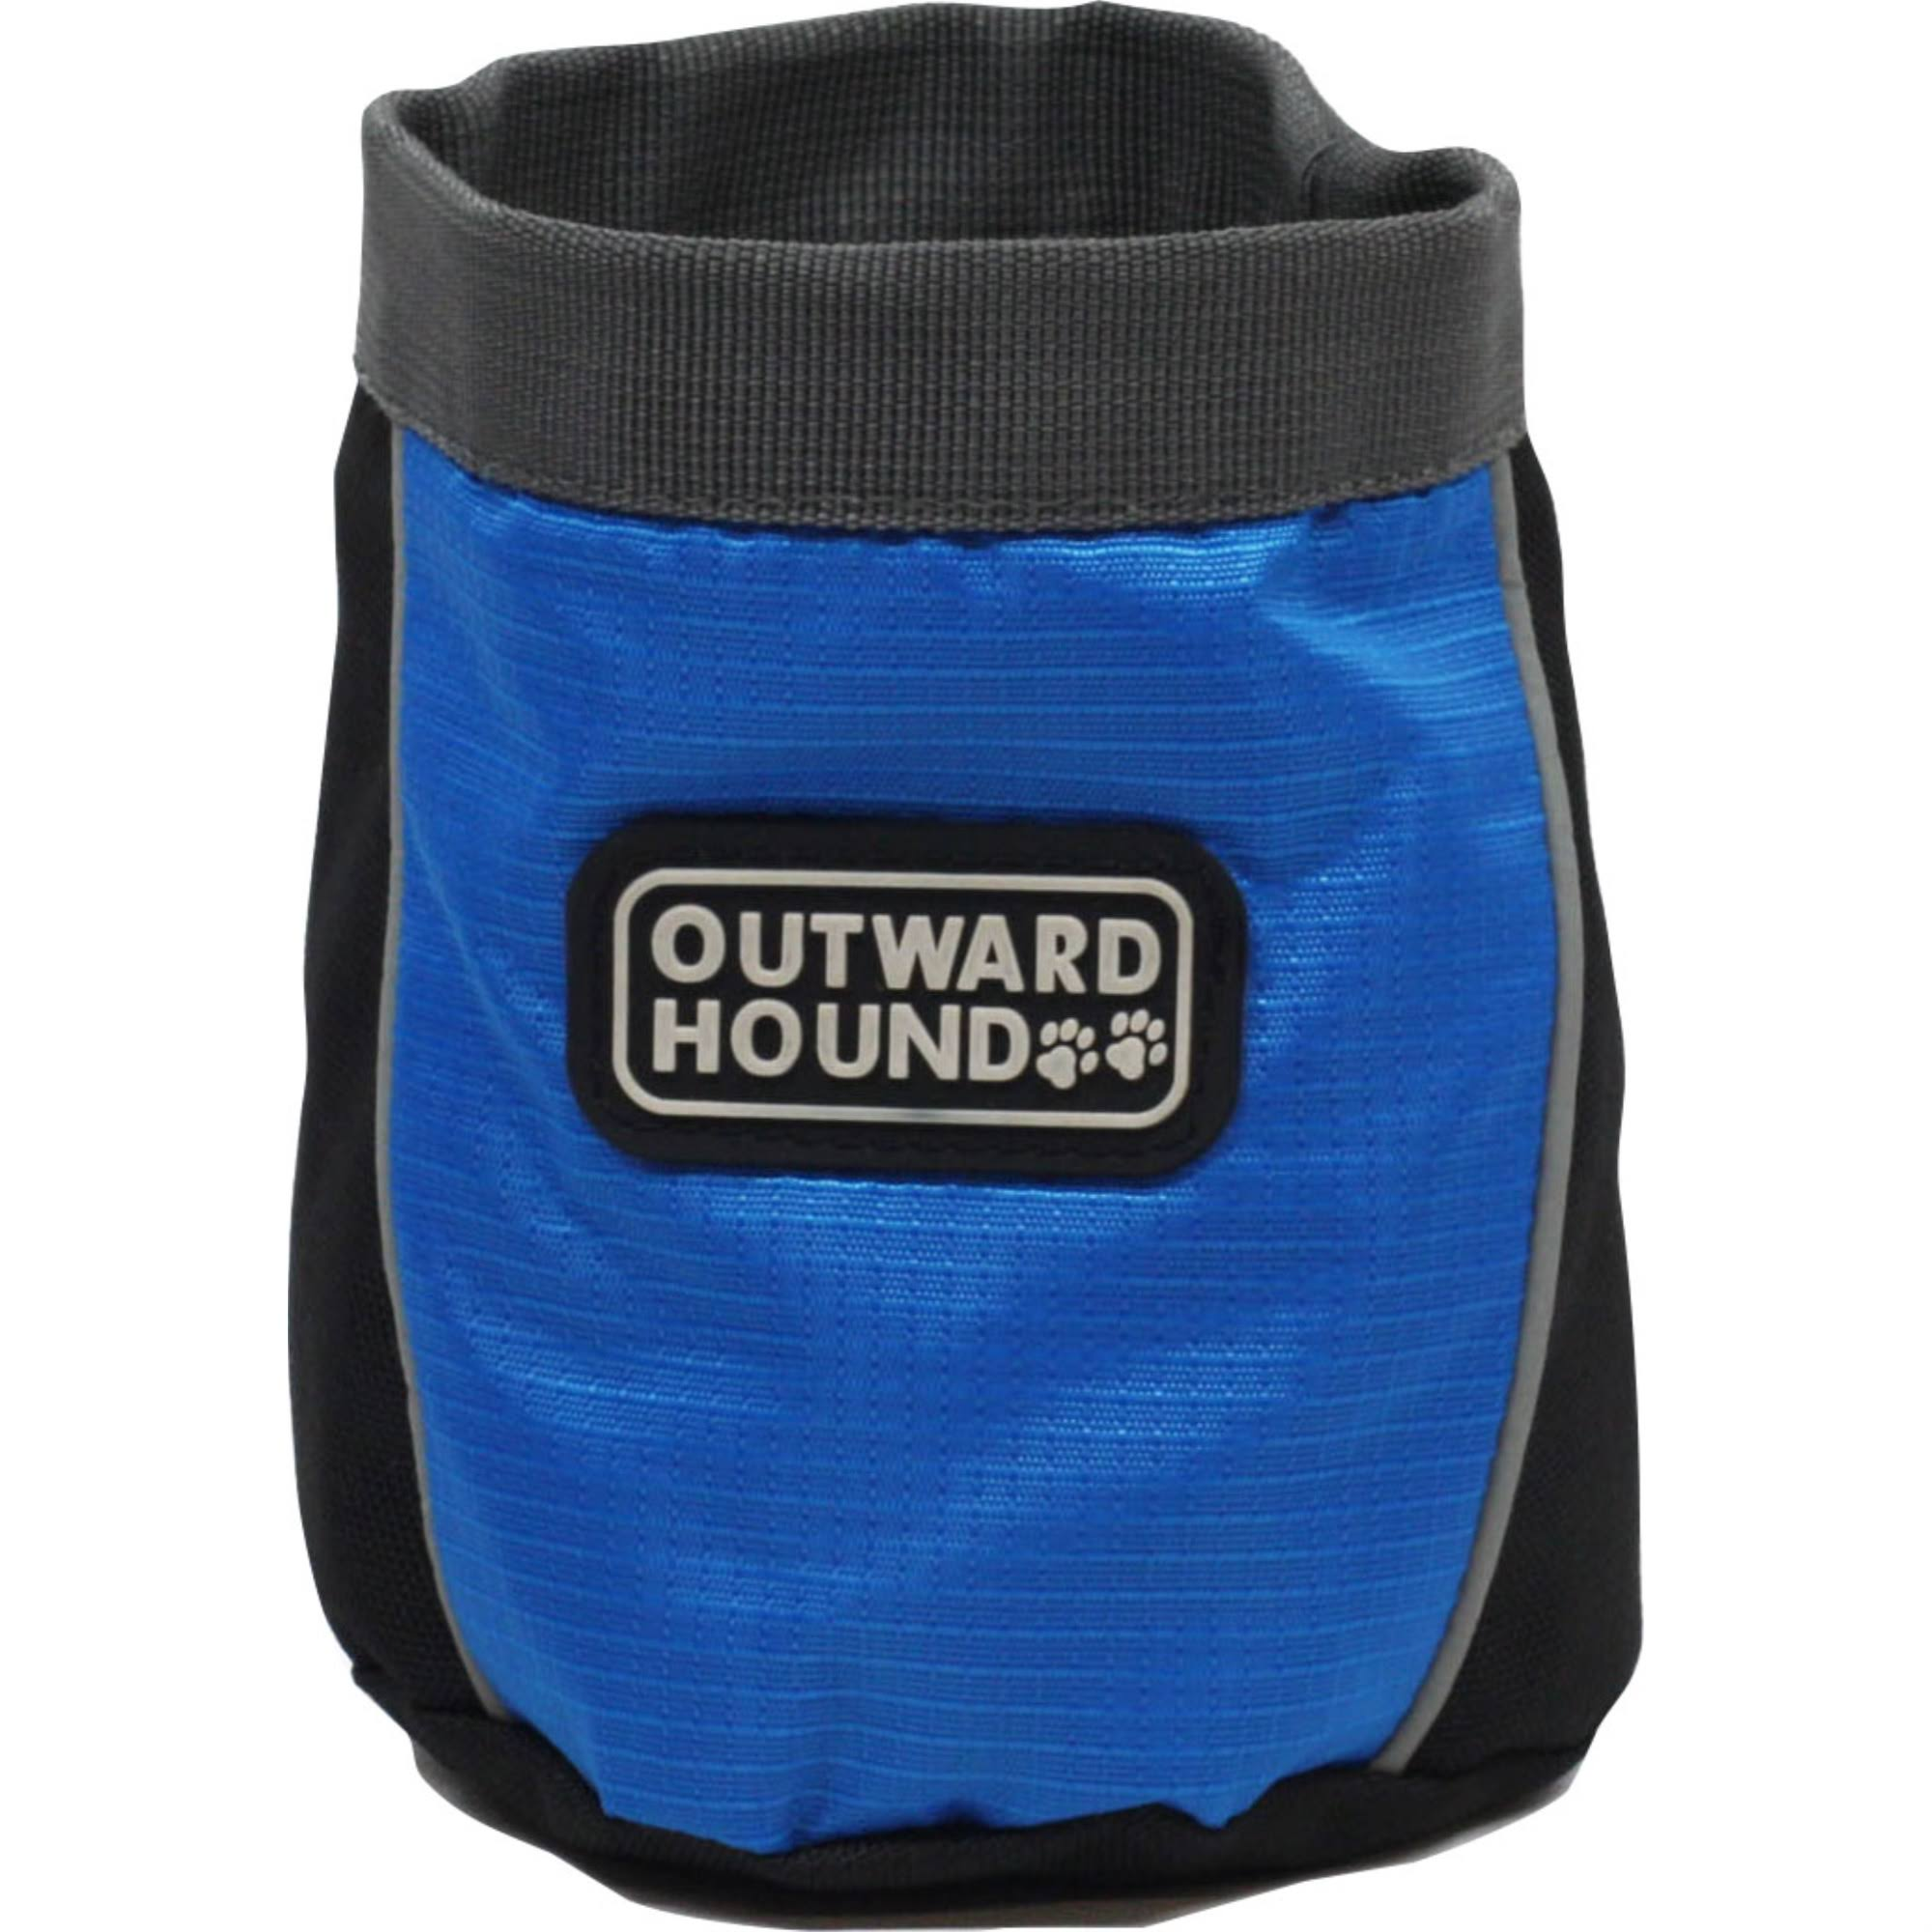 Outward Hound Kyjen Treat Tote Treat and Training Bag Dog Treat Carrier - Drawstring, Blue